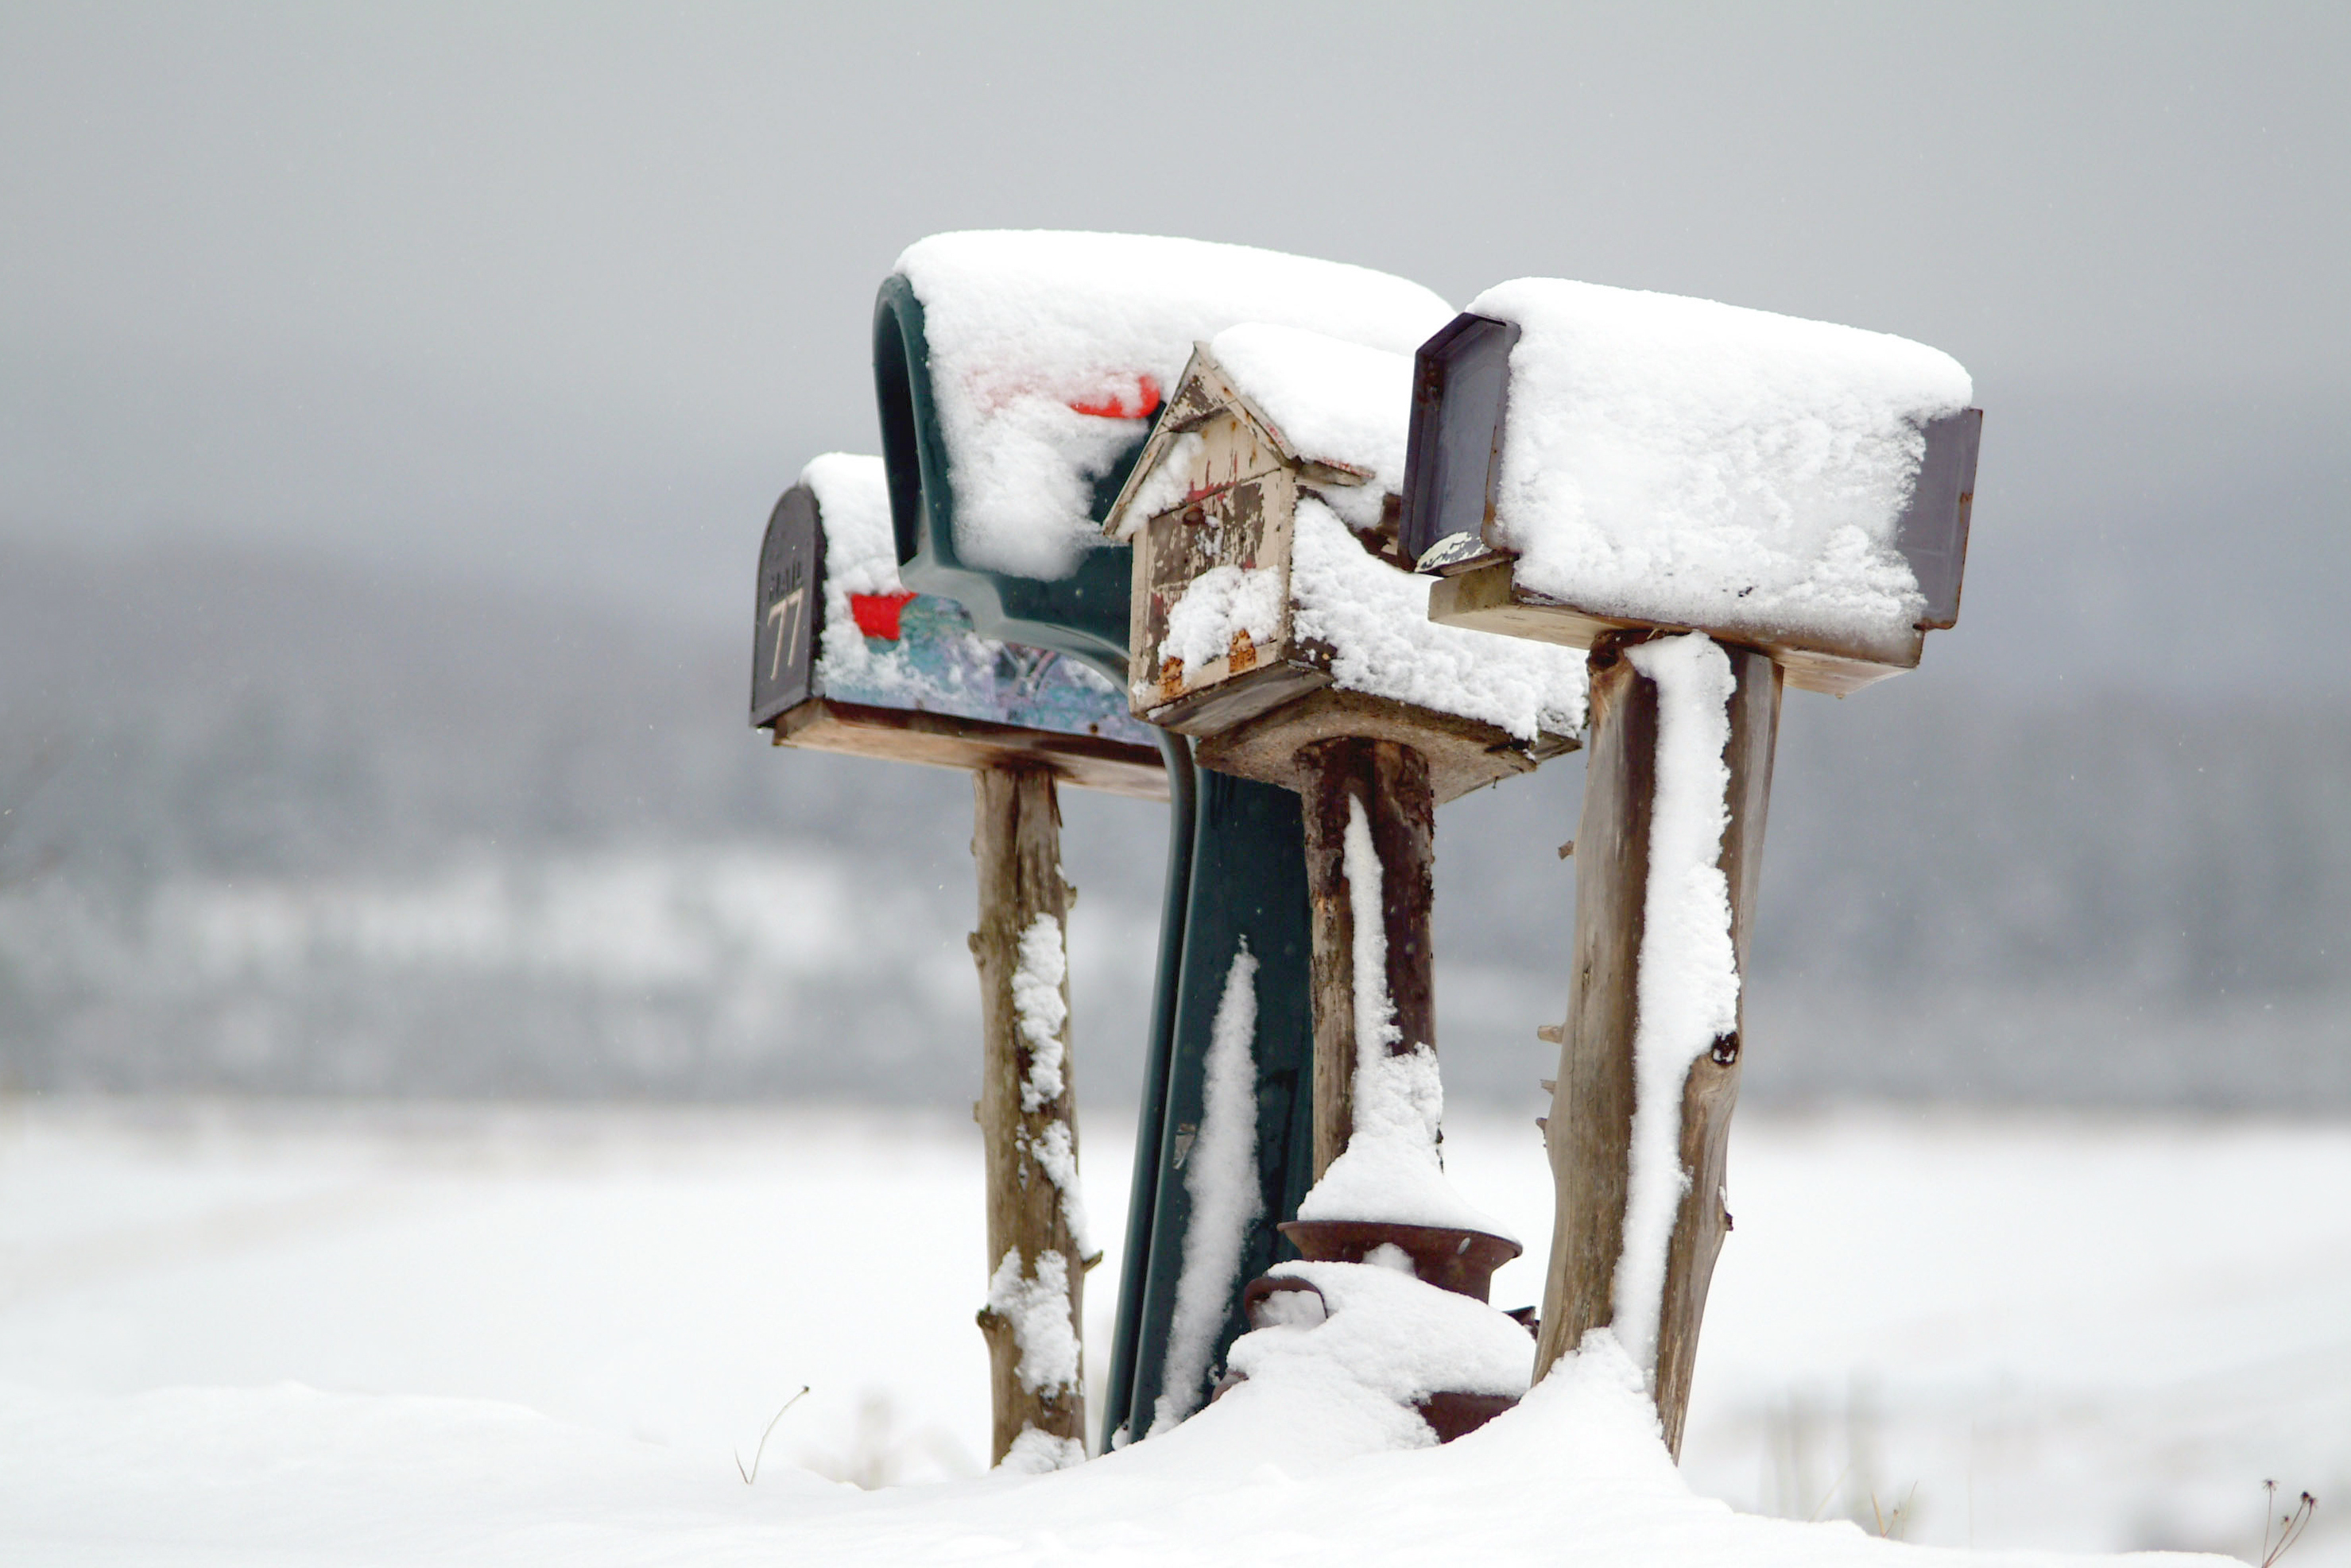 Mailbox in the north america countryside